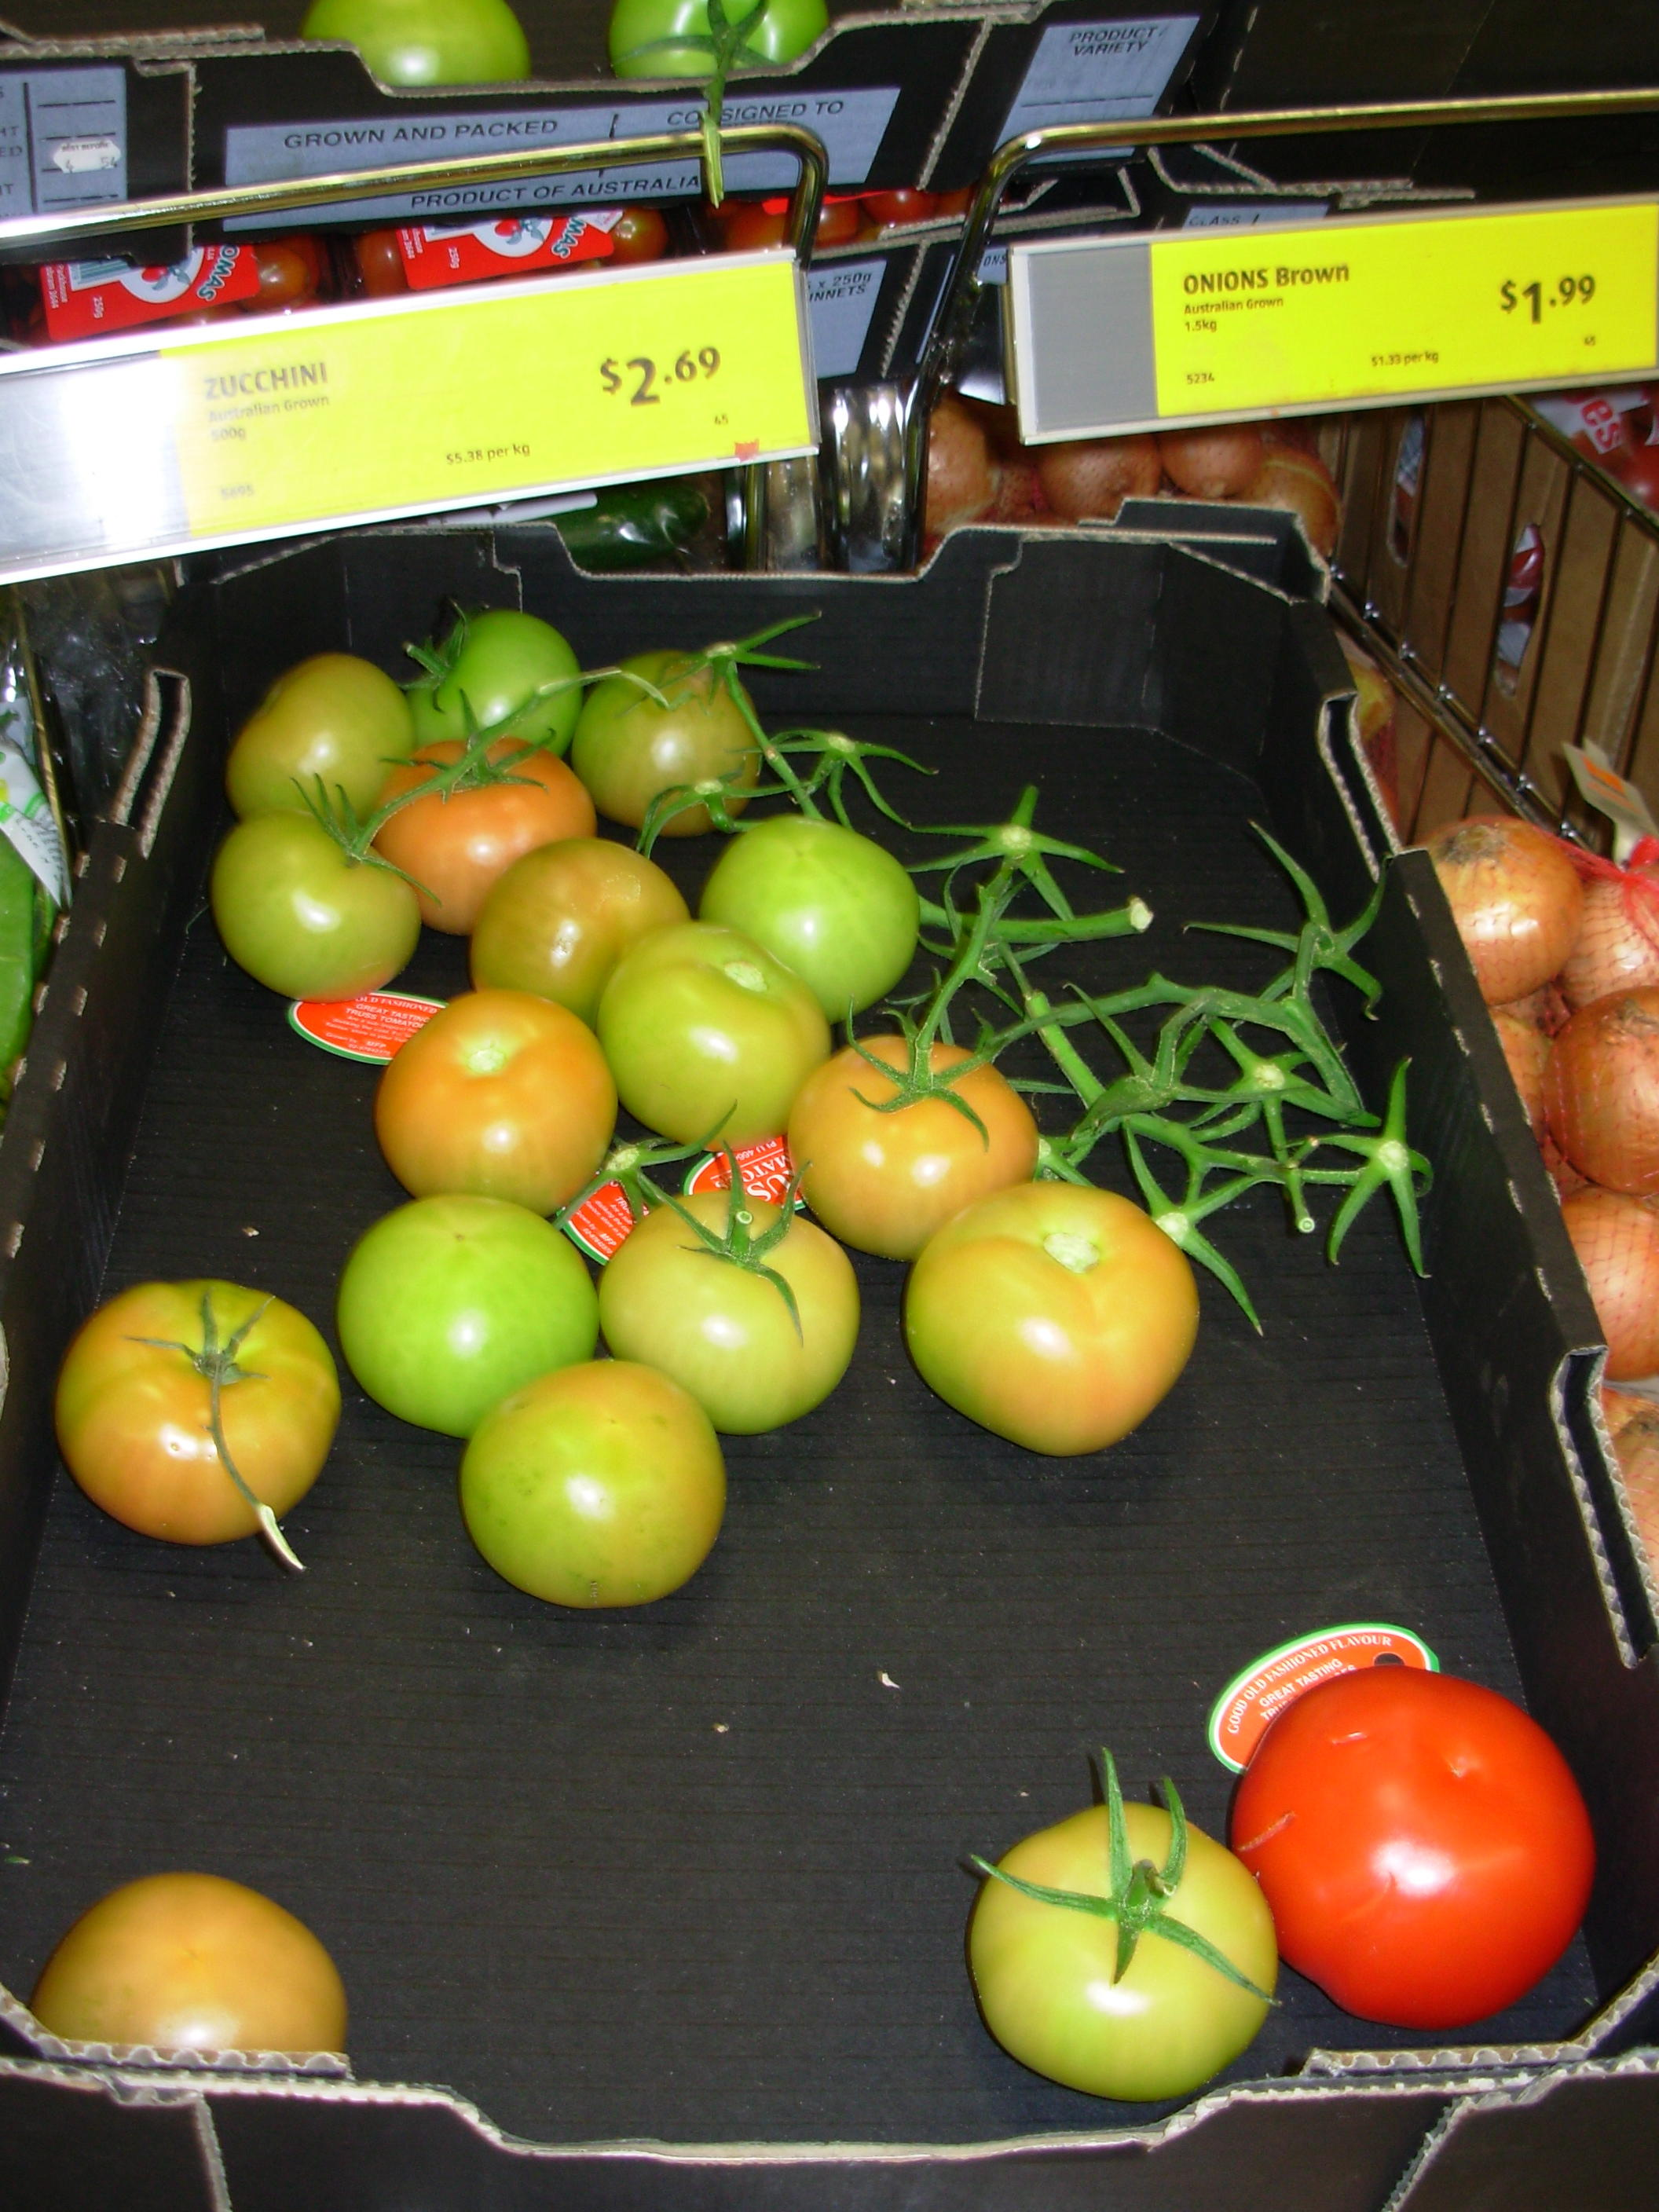 This should be aldi-tomatoes.jpeg.  Is it missing?